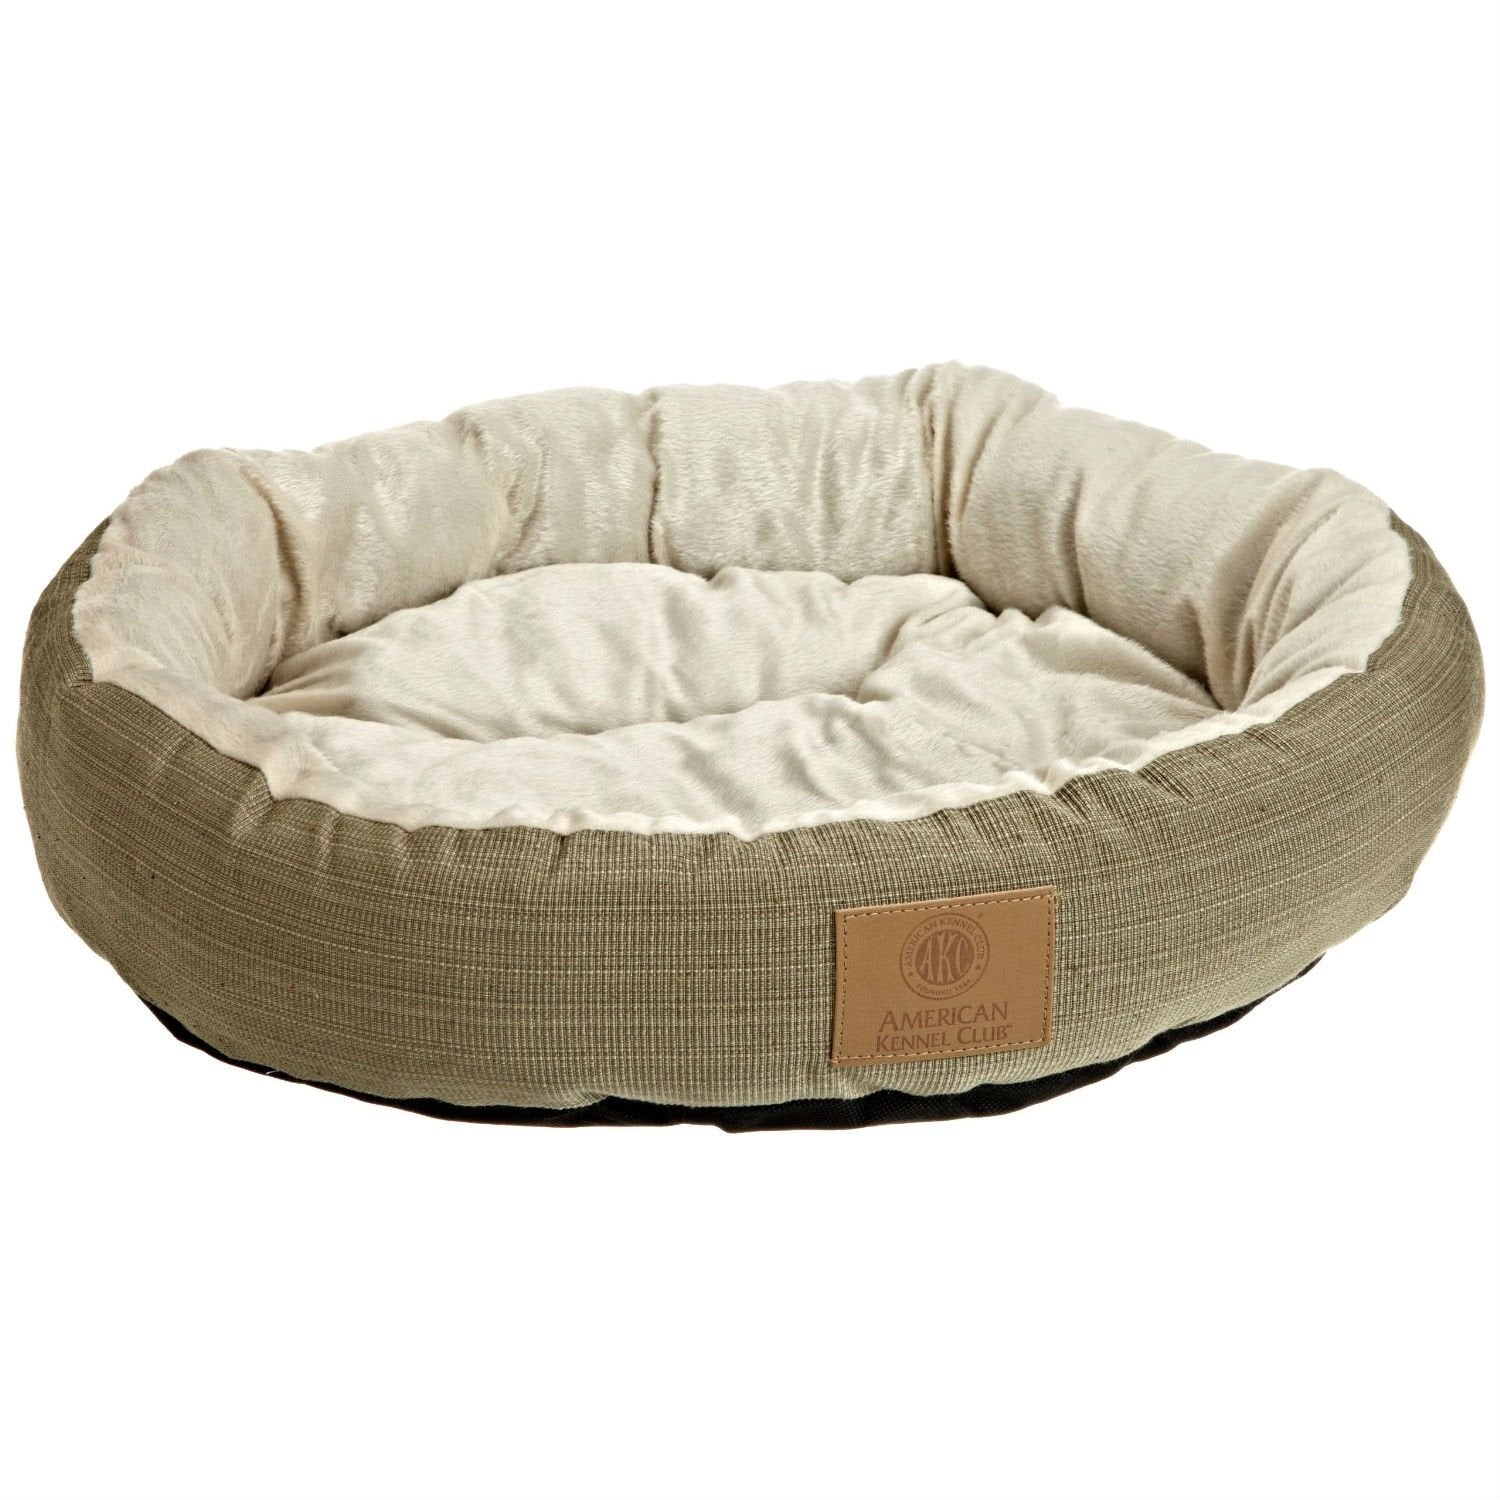 Cat and Dog Pets Beds Providers Hiltonfurnitures